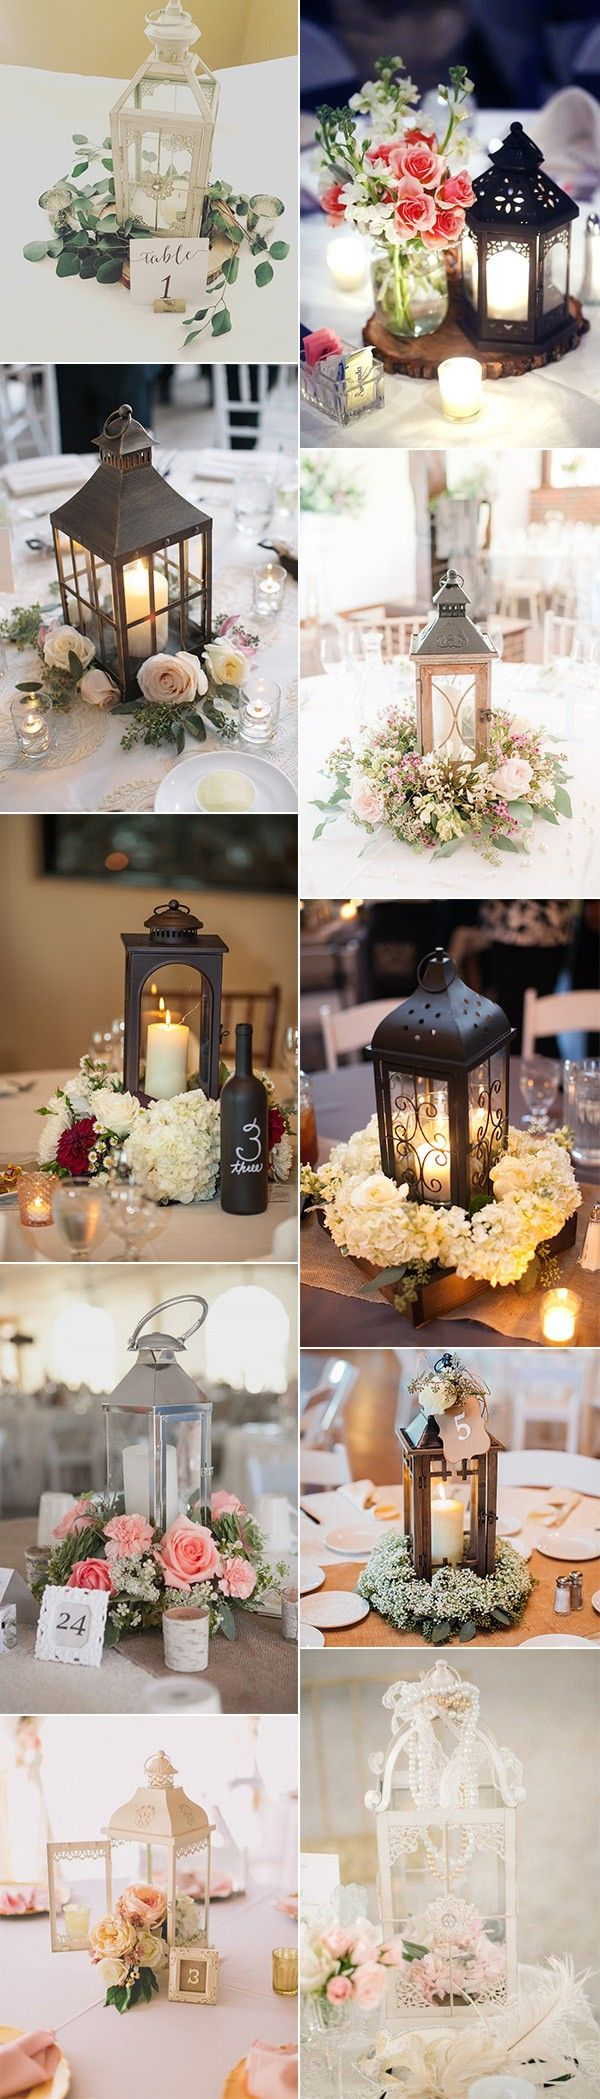 chic vintage wedding centerpiece ideas with lanterns